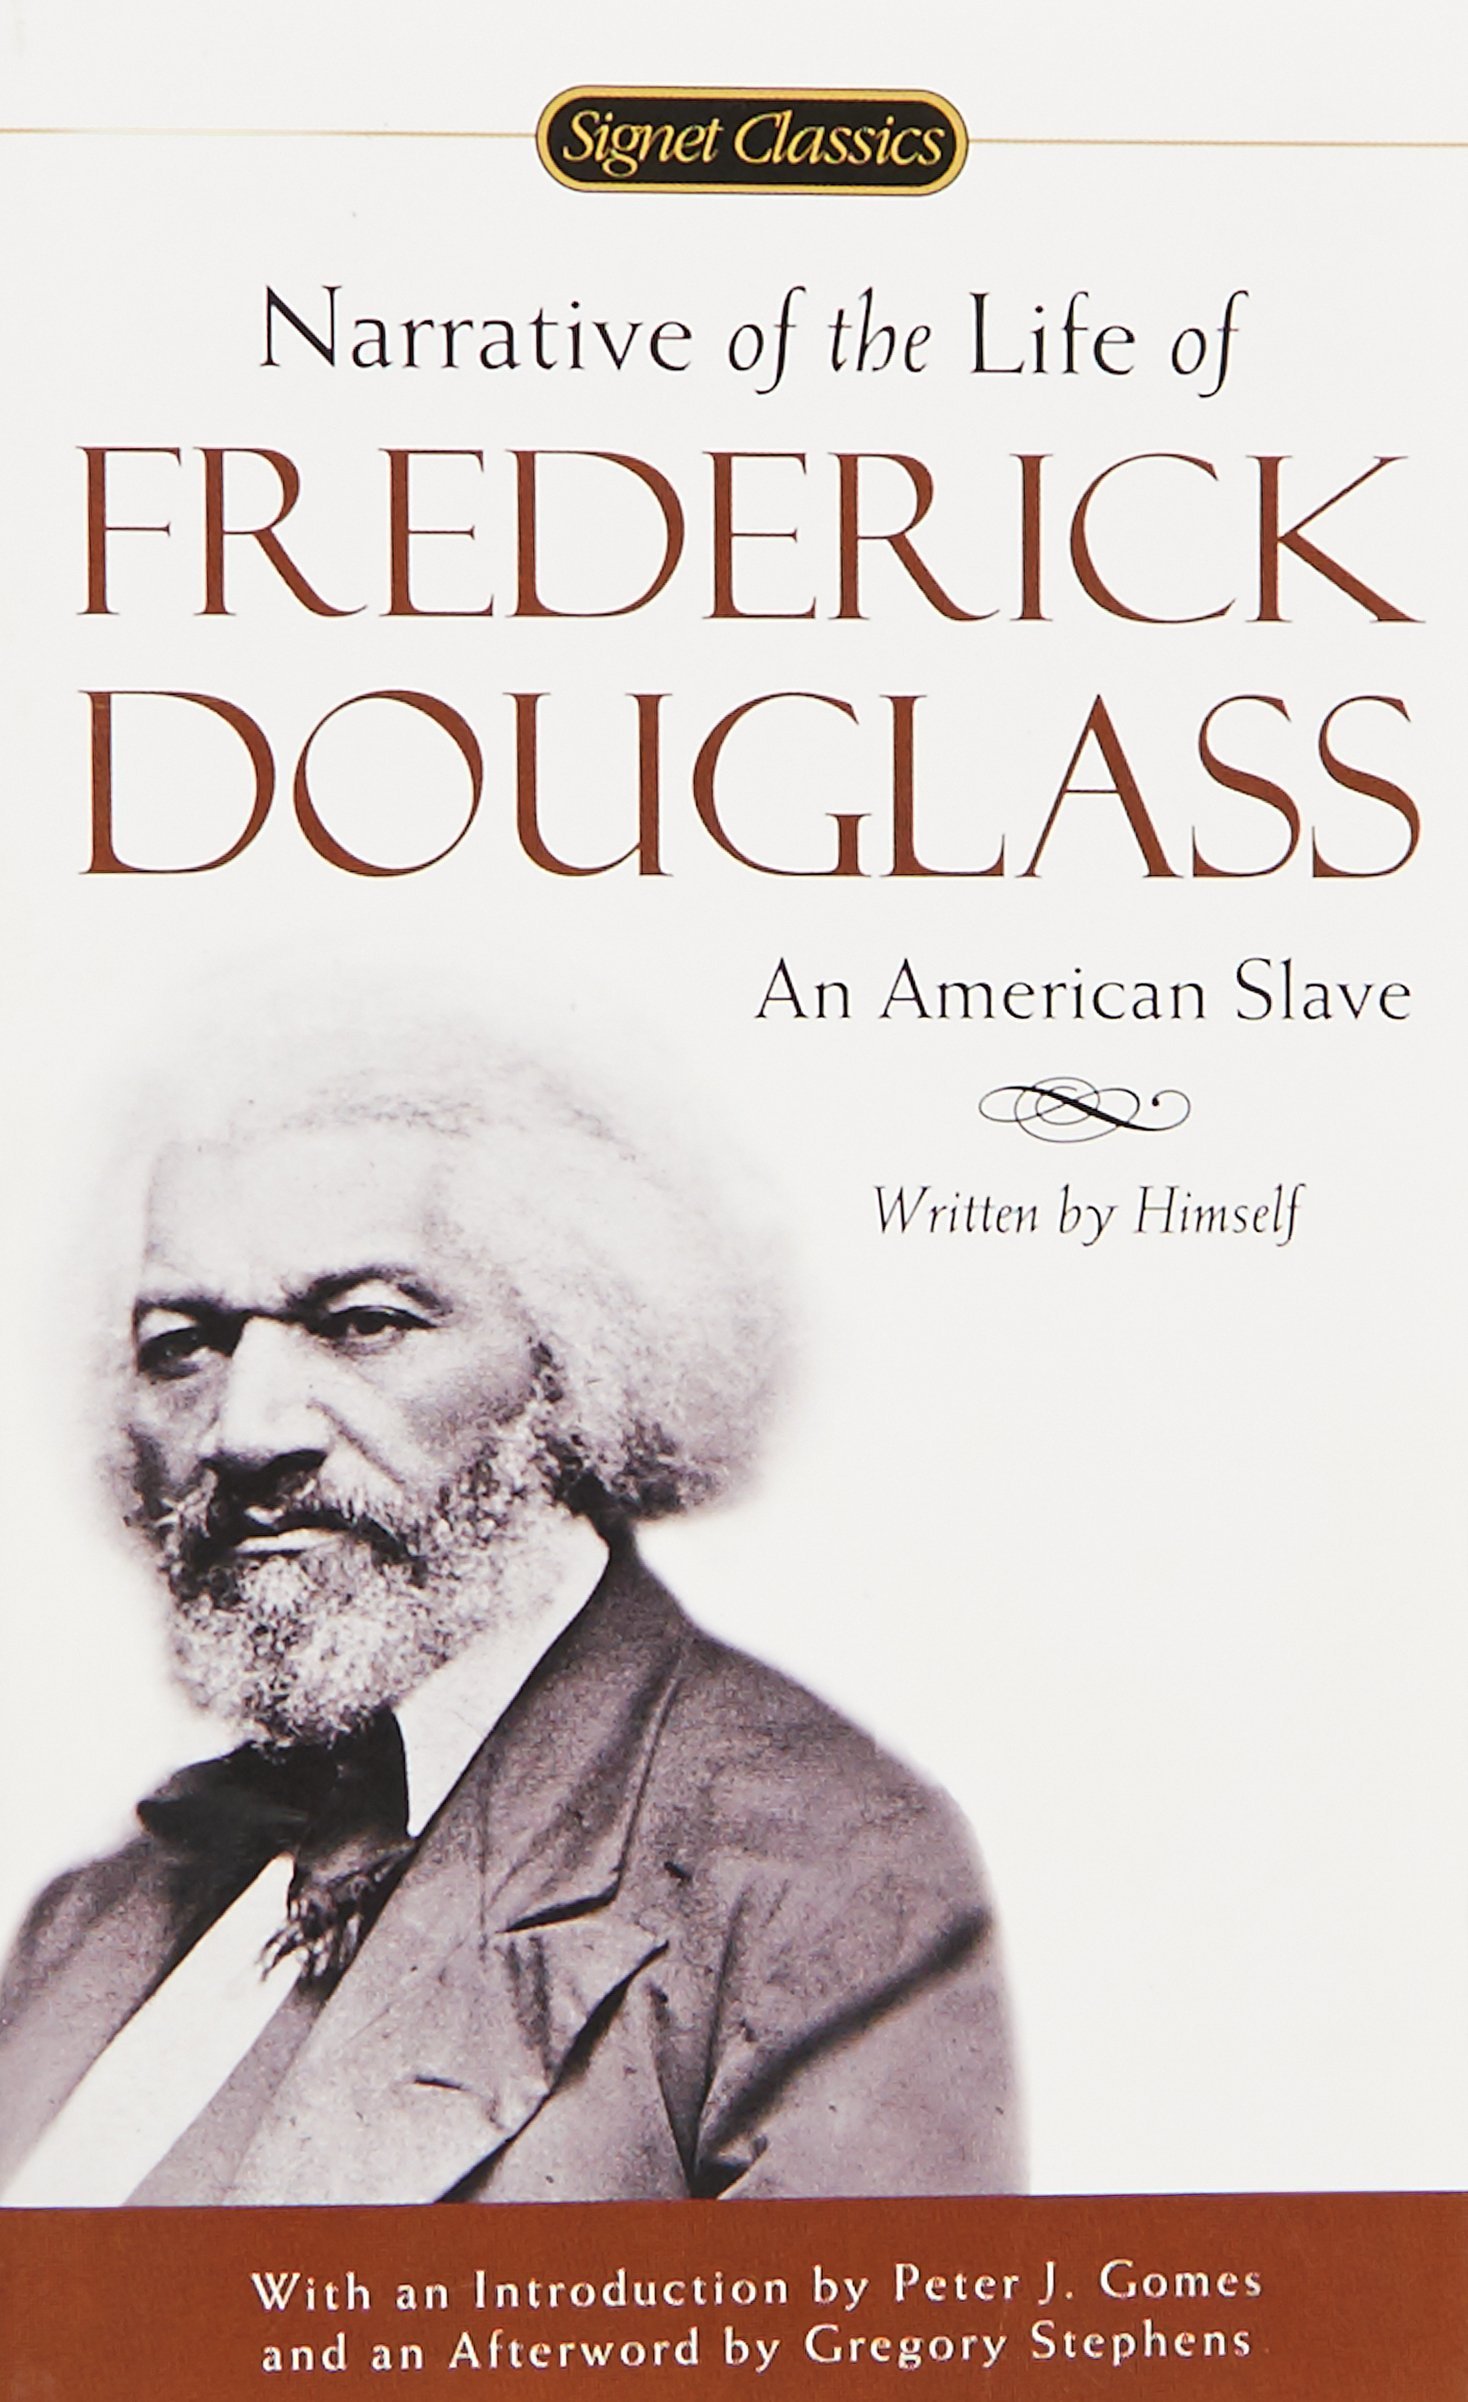 narrative of the life of frederick douglass signet classics  narrative of the life of frederick douglass signet classics frederick douglass peter j gomes gregory stephens 9780451529947 com books